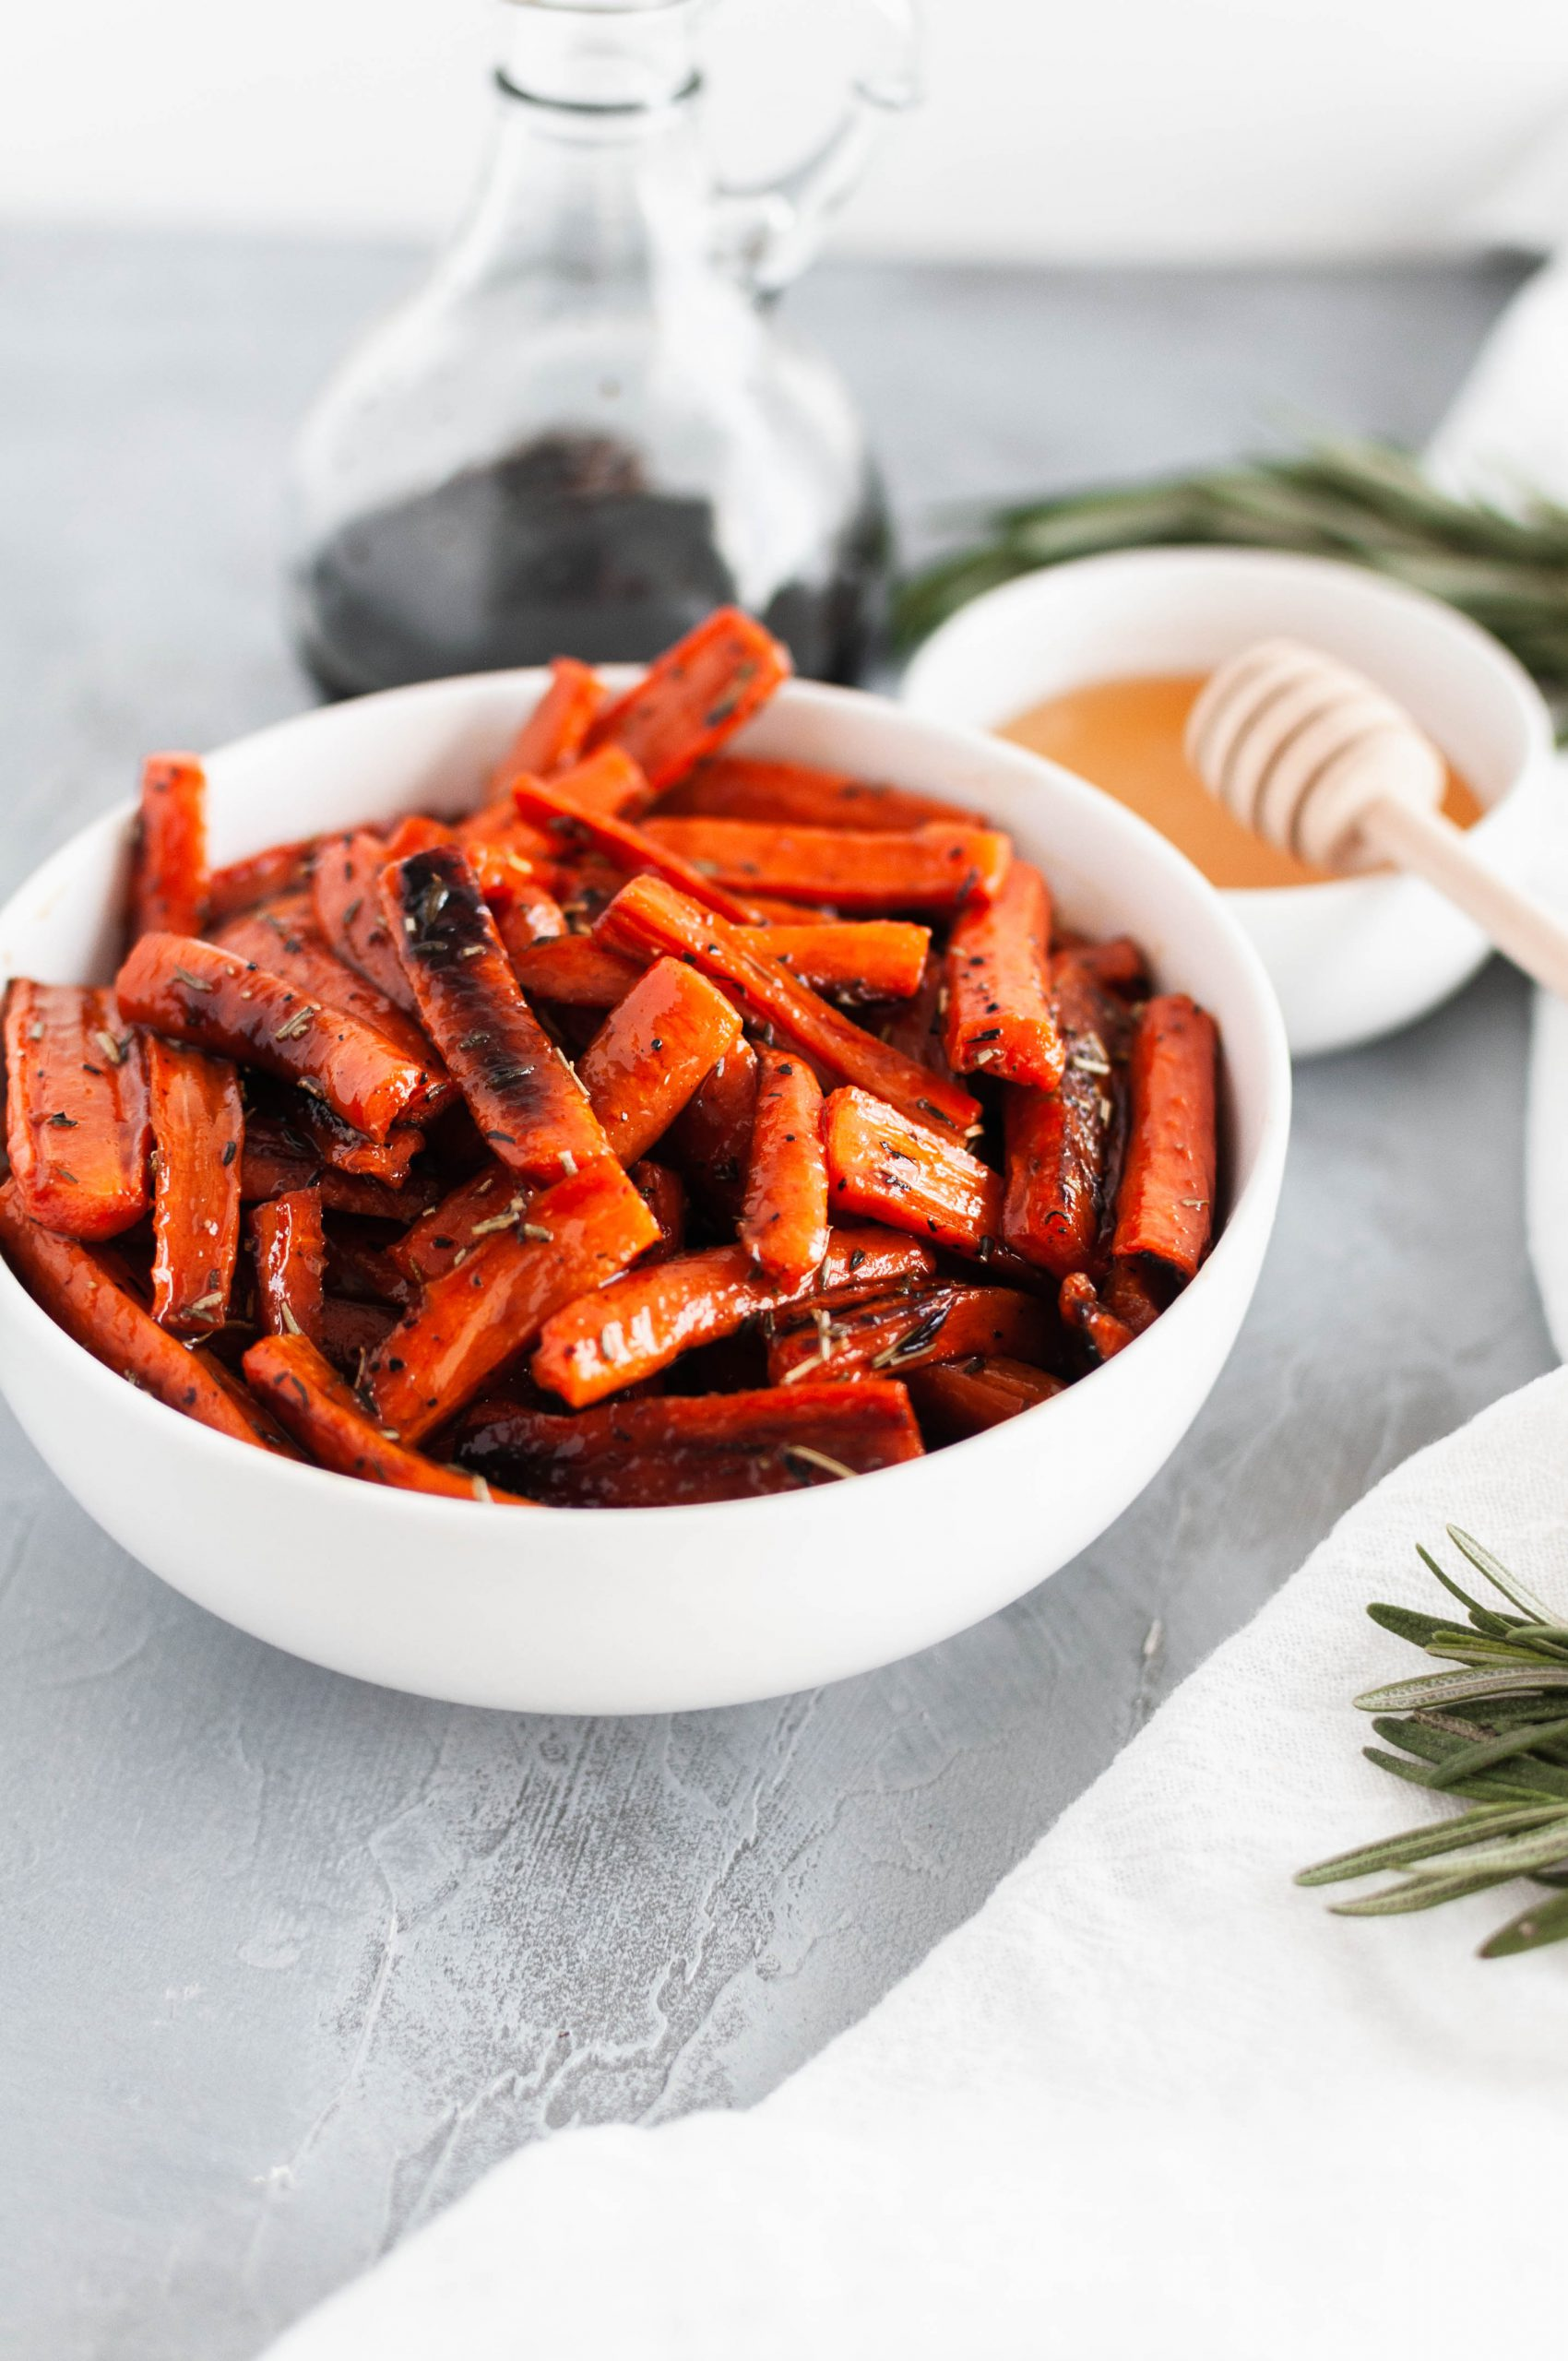 Honey Balsamic Roasted Carrots are a simple and delicious side dish for weeknights or holidays. Slightly tangy and sweet.